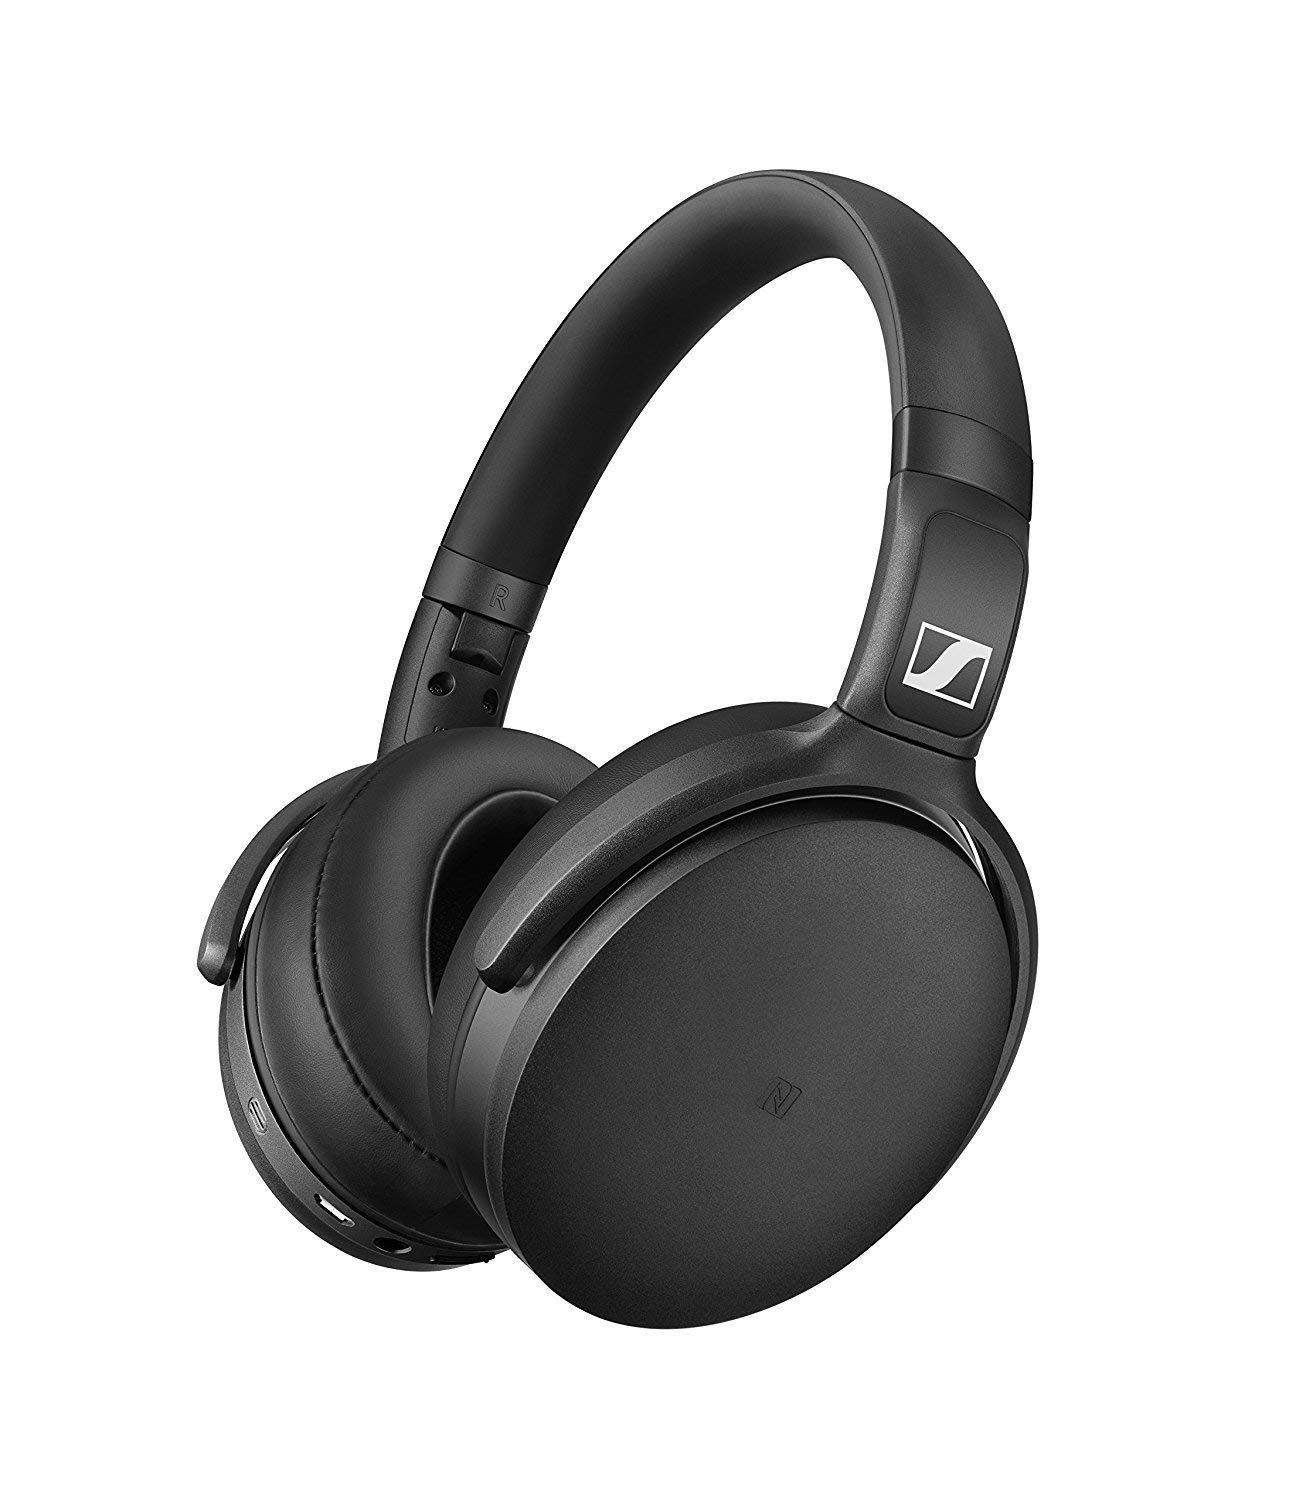 🔥 Prime Day : le casque bluetooth Sennheiser HD 4.50 est disponible à 99 euros, réduction de bruit active comprise